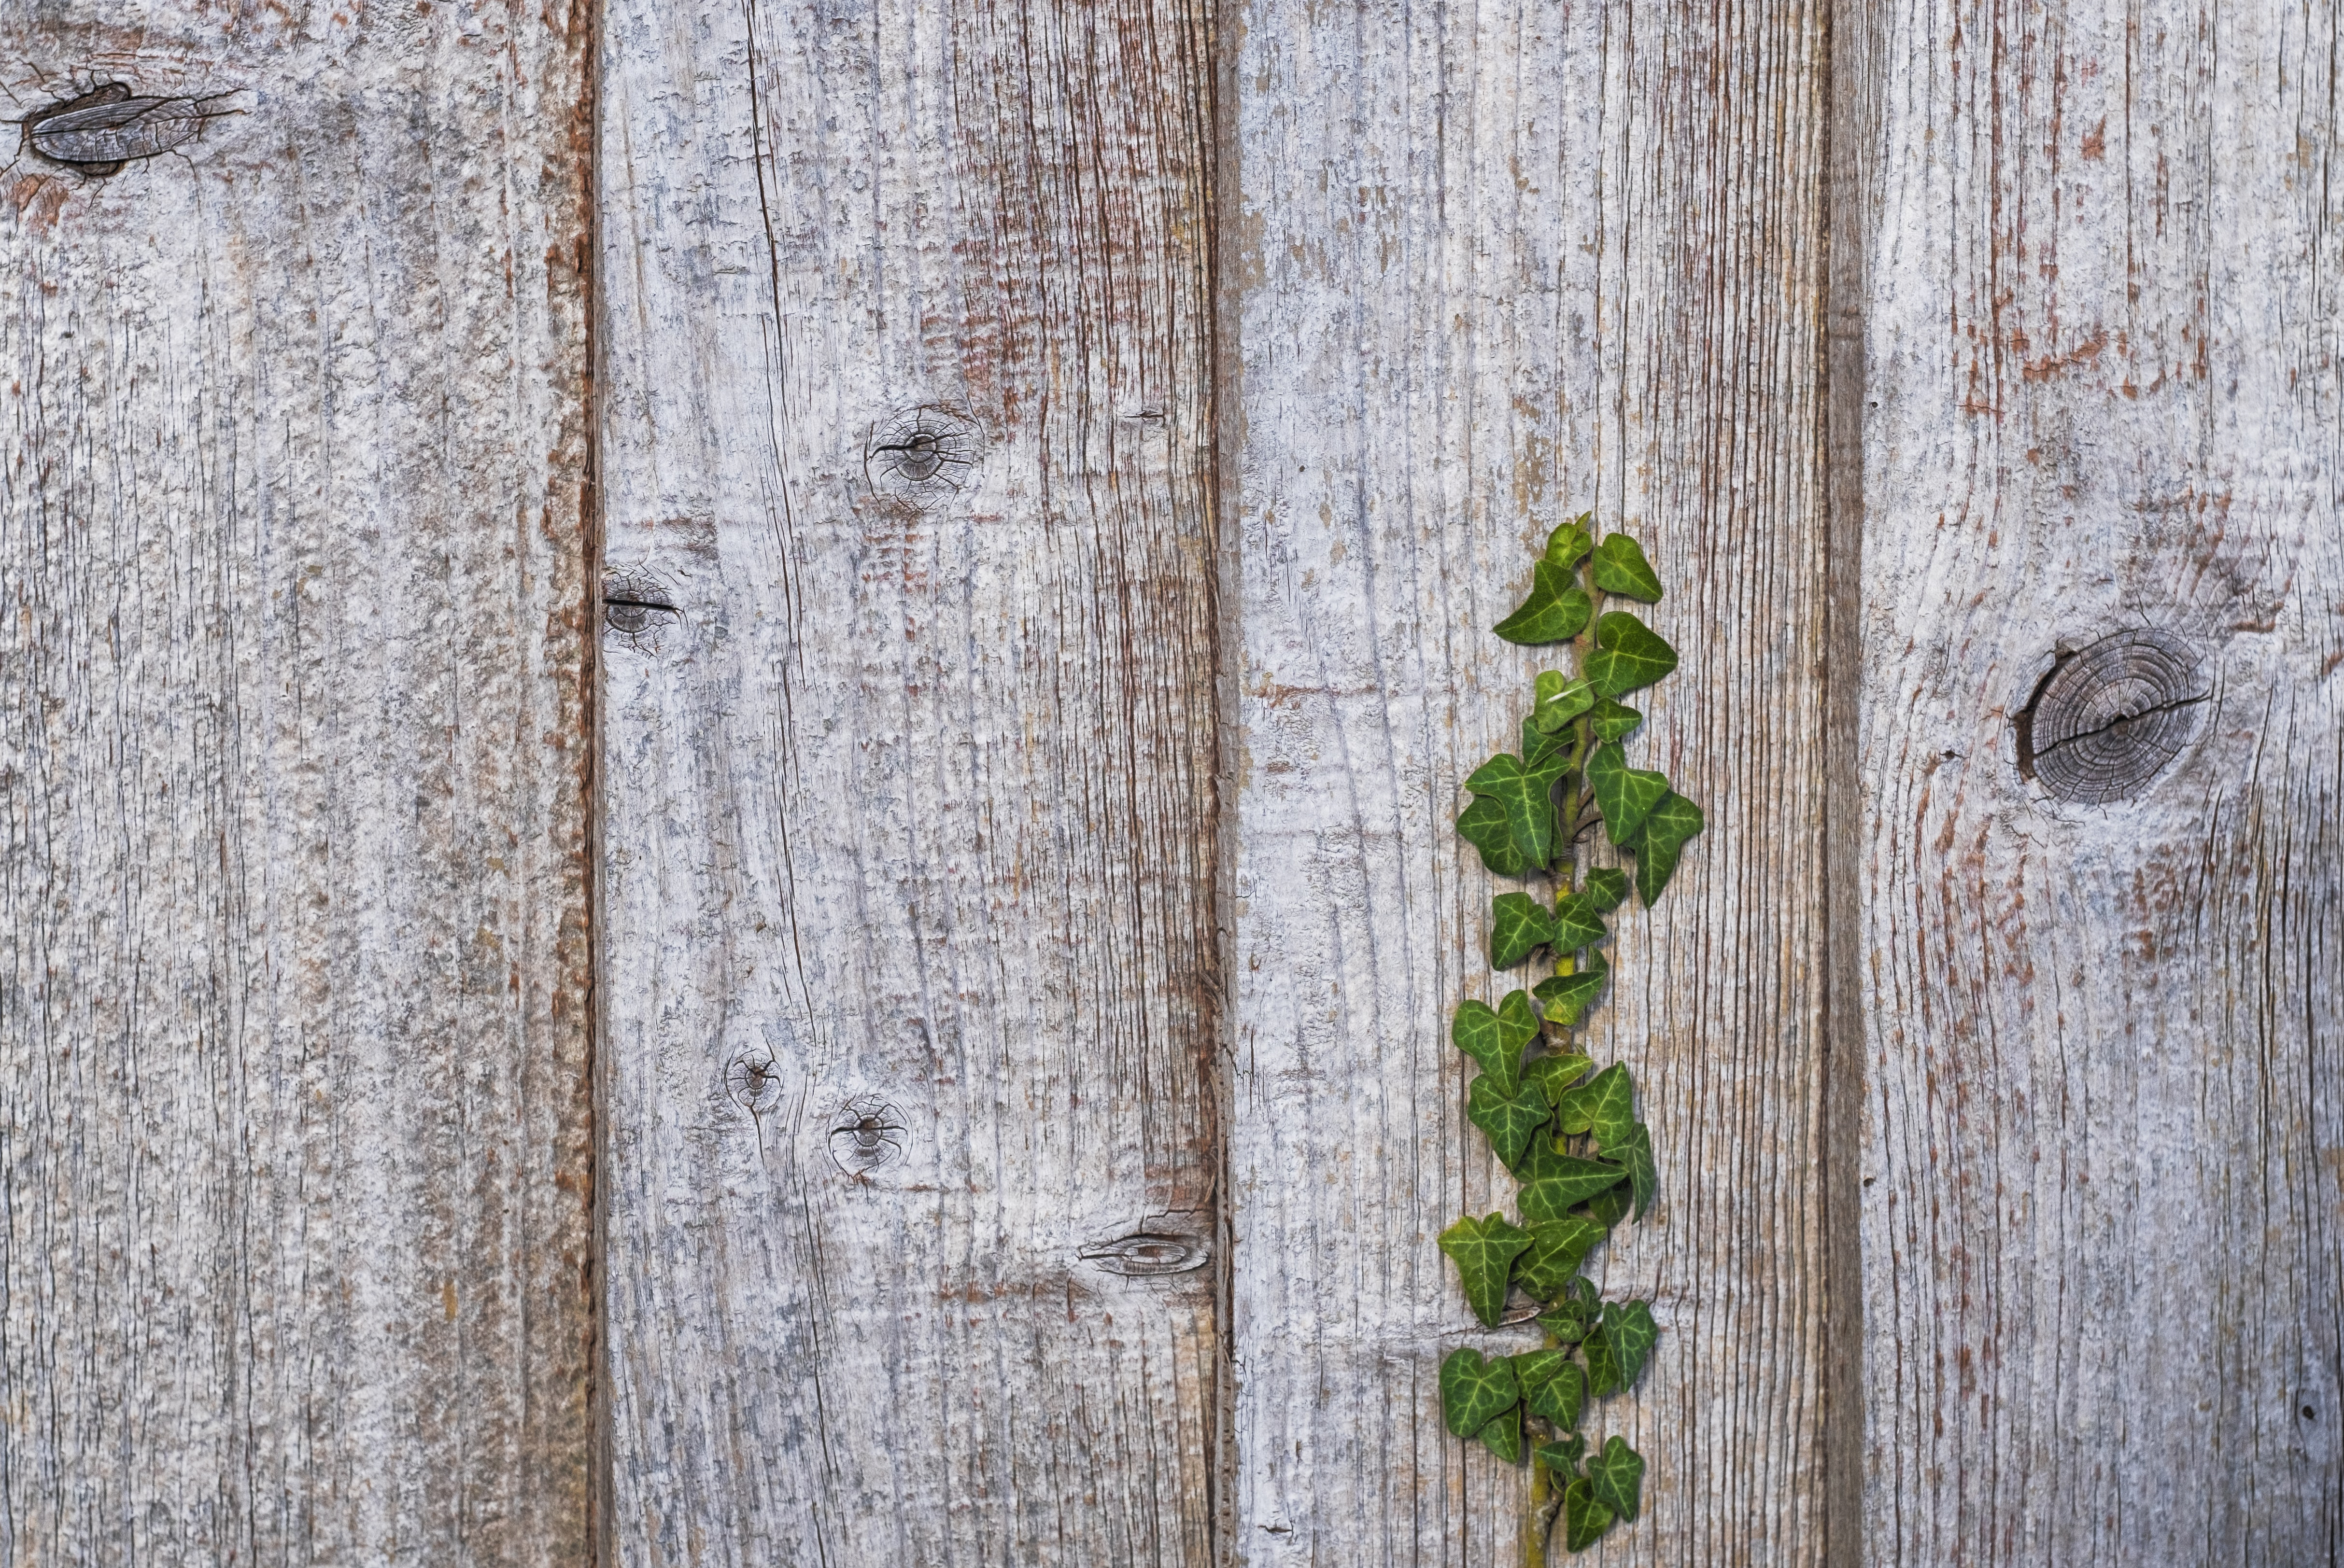 green leafed plant on brown wooden plank